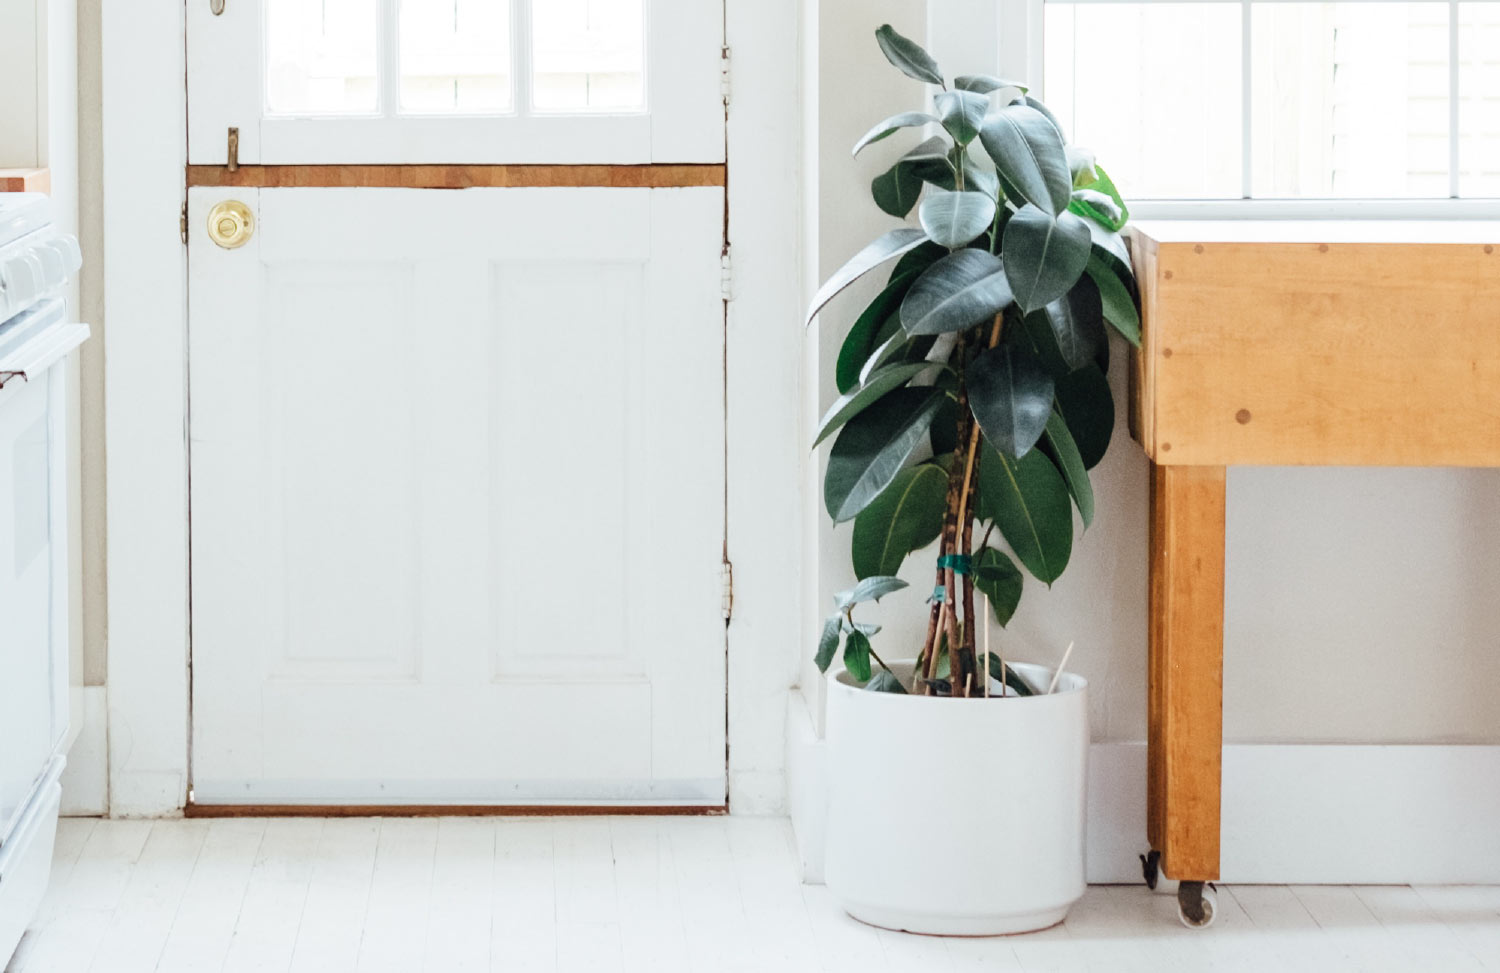 rubber plant next to wooden table in white room near door